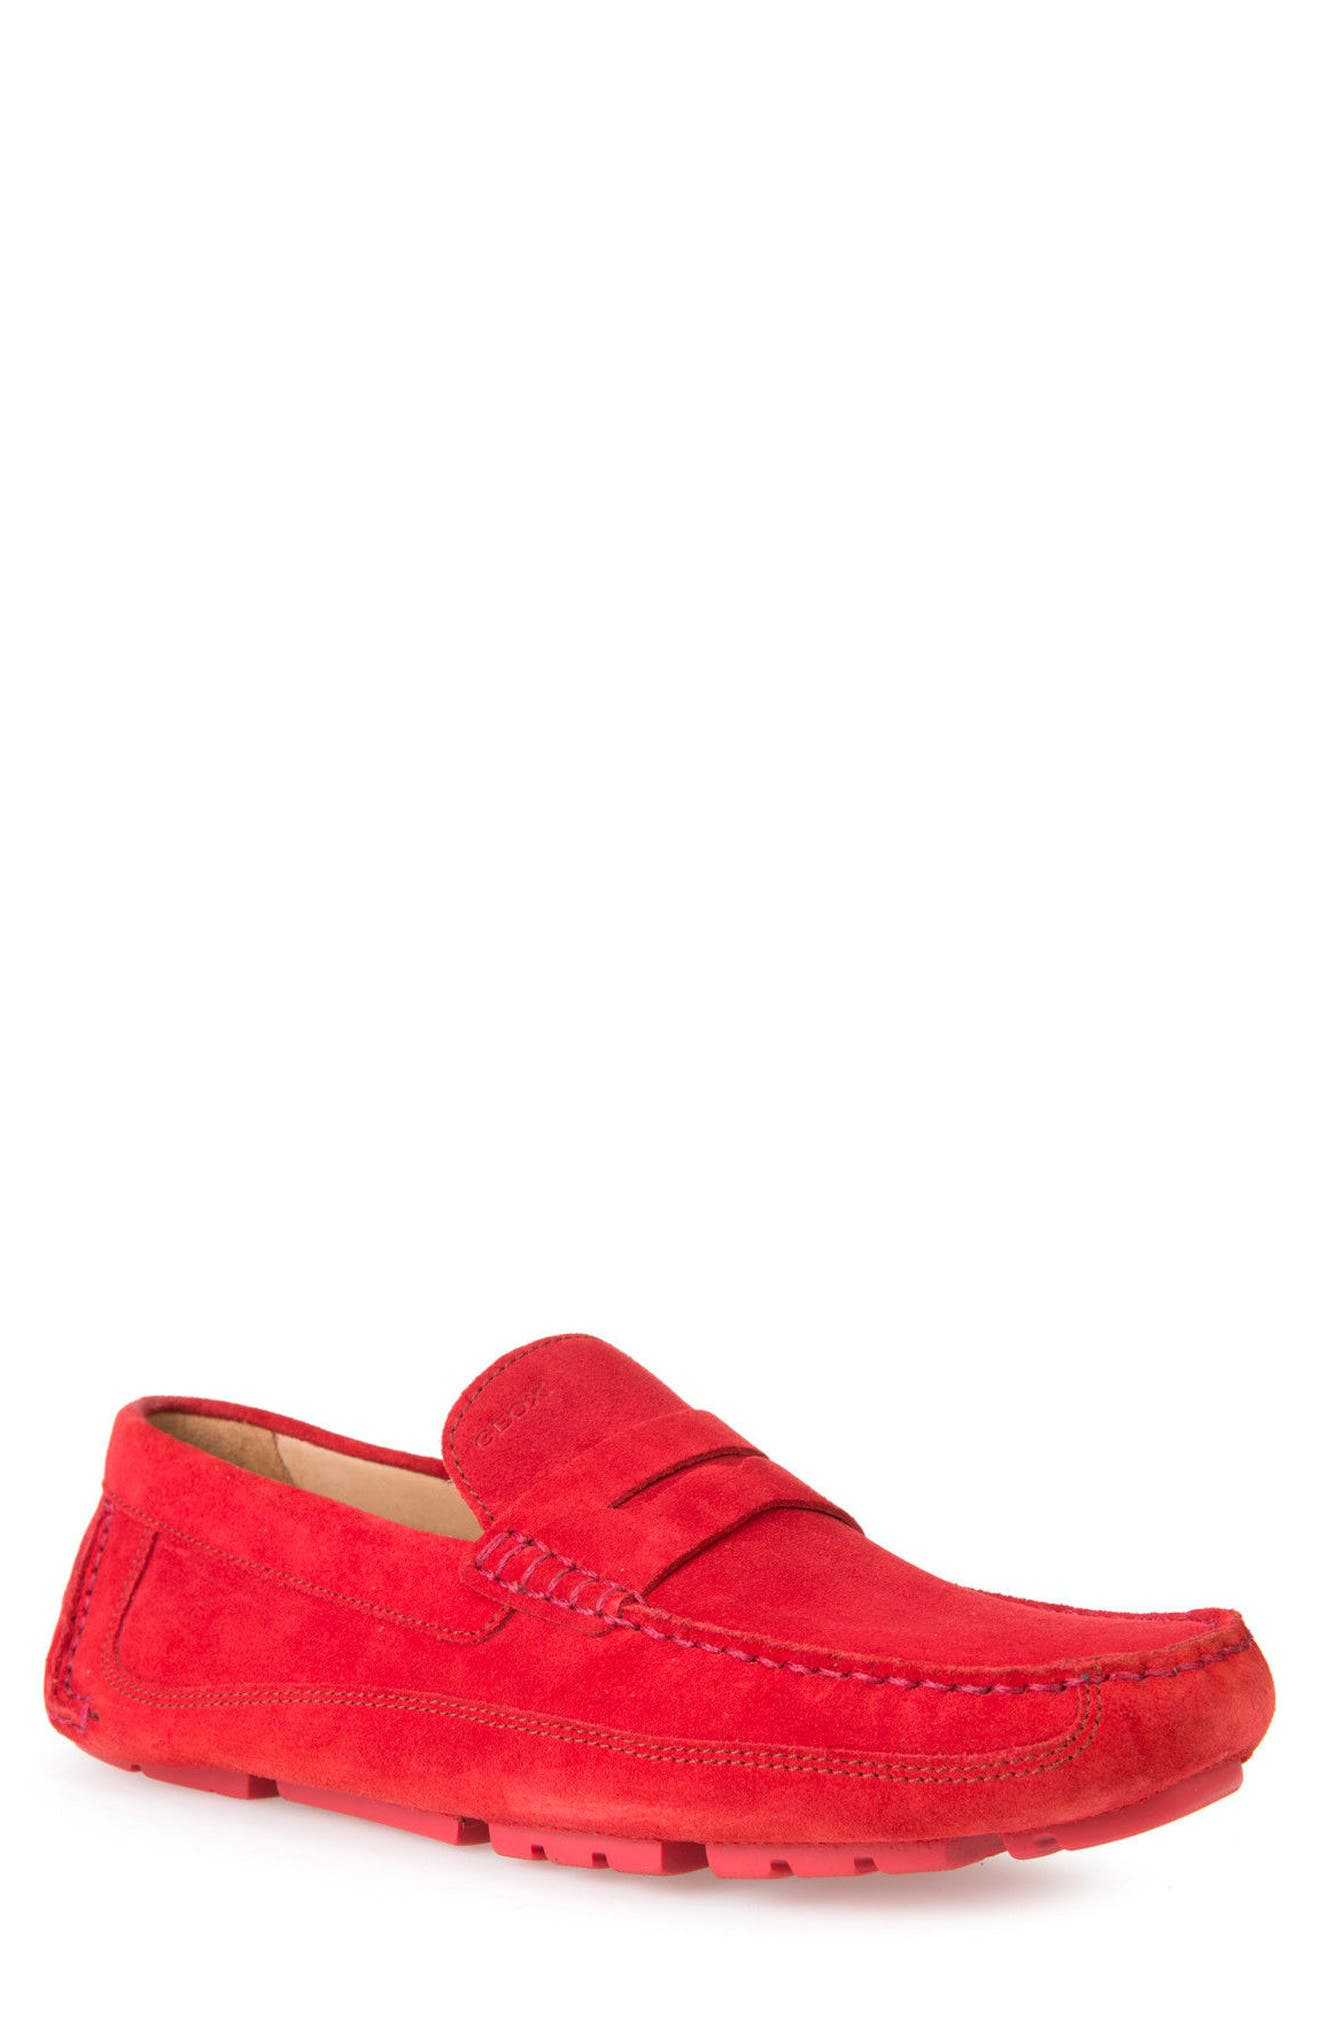 Melbourne 1 Driving Shoe,                             Main thumbnail 1, color,                             Red Suede